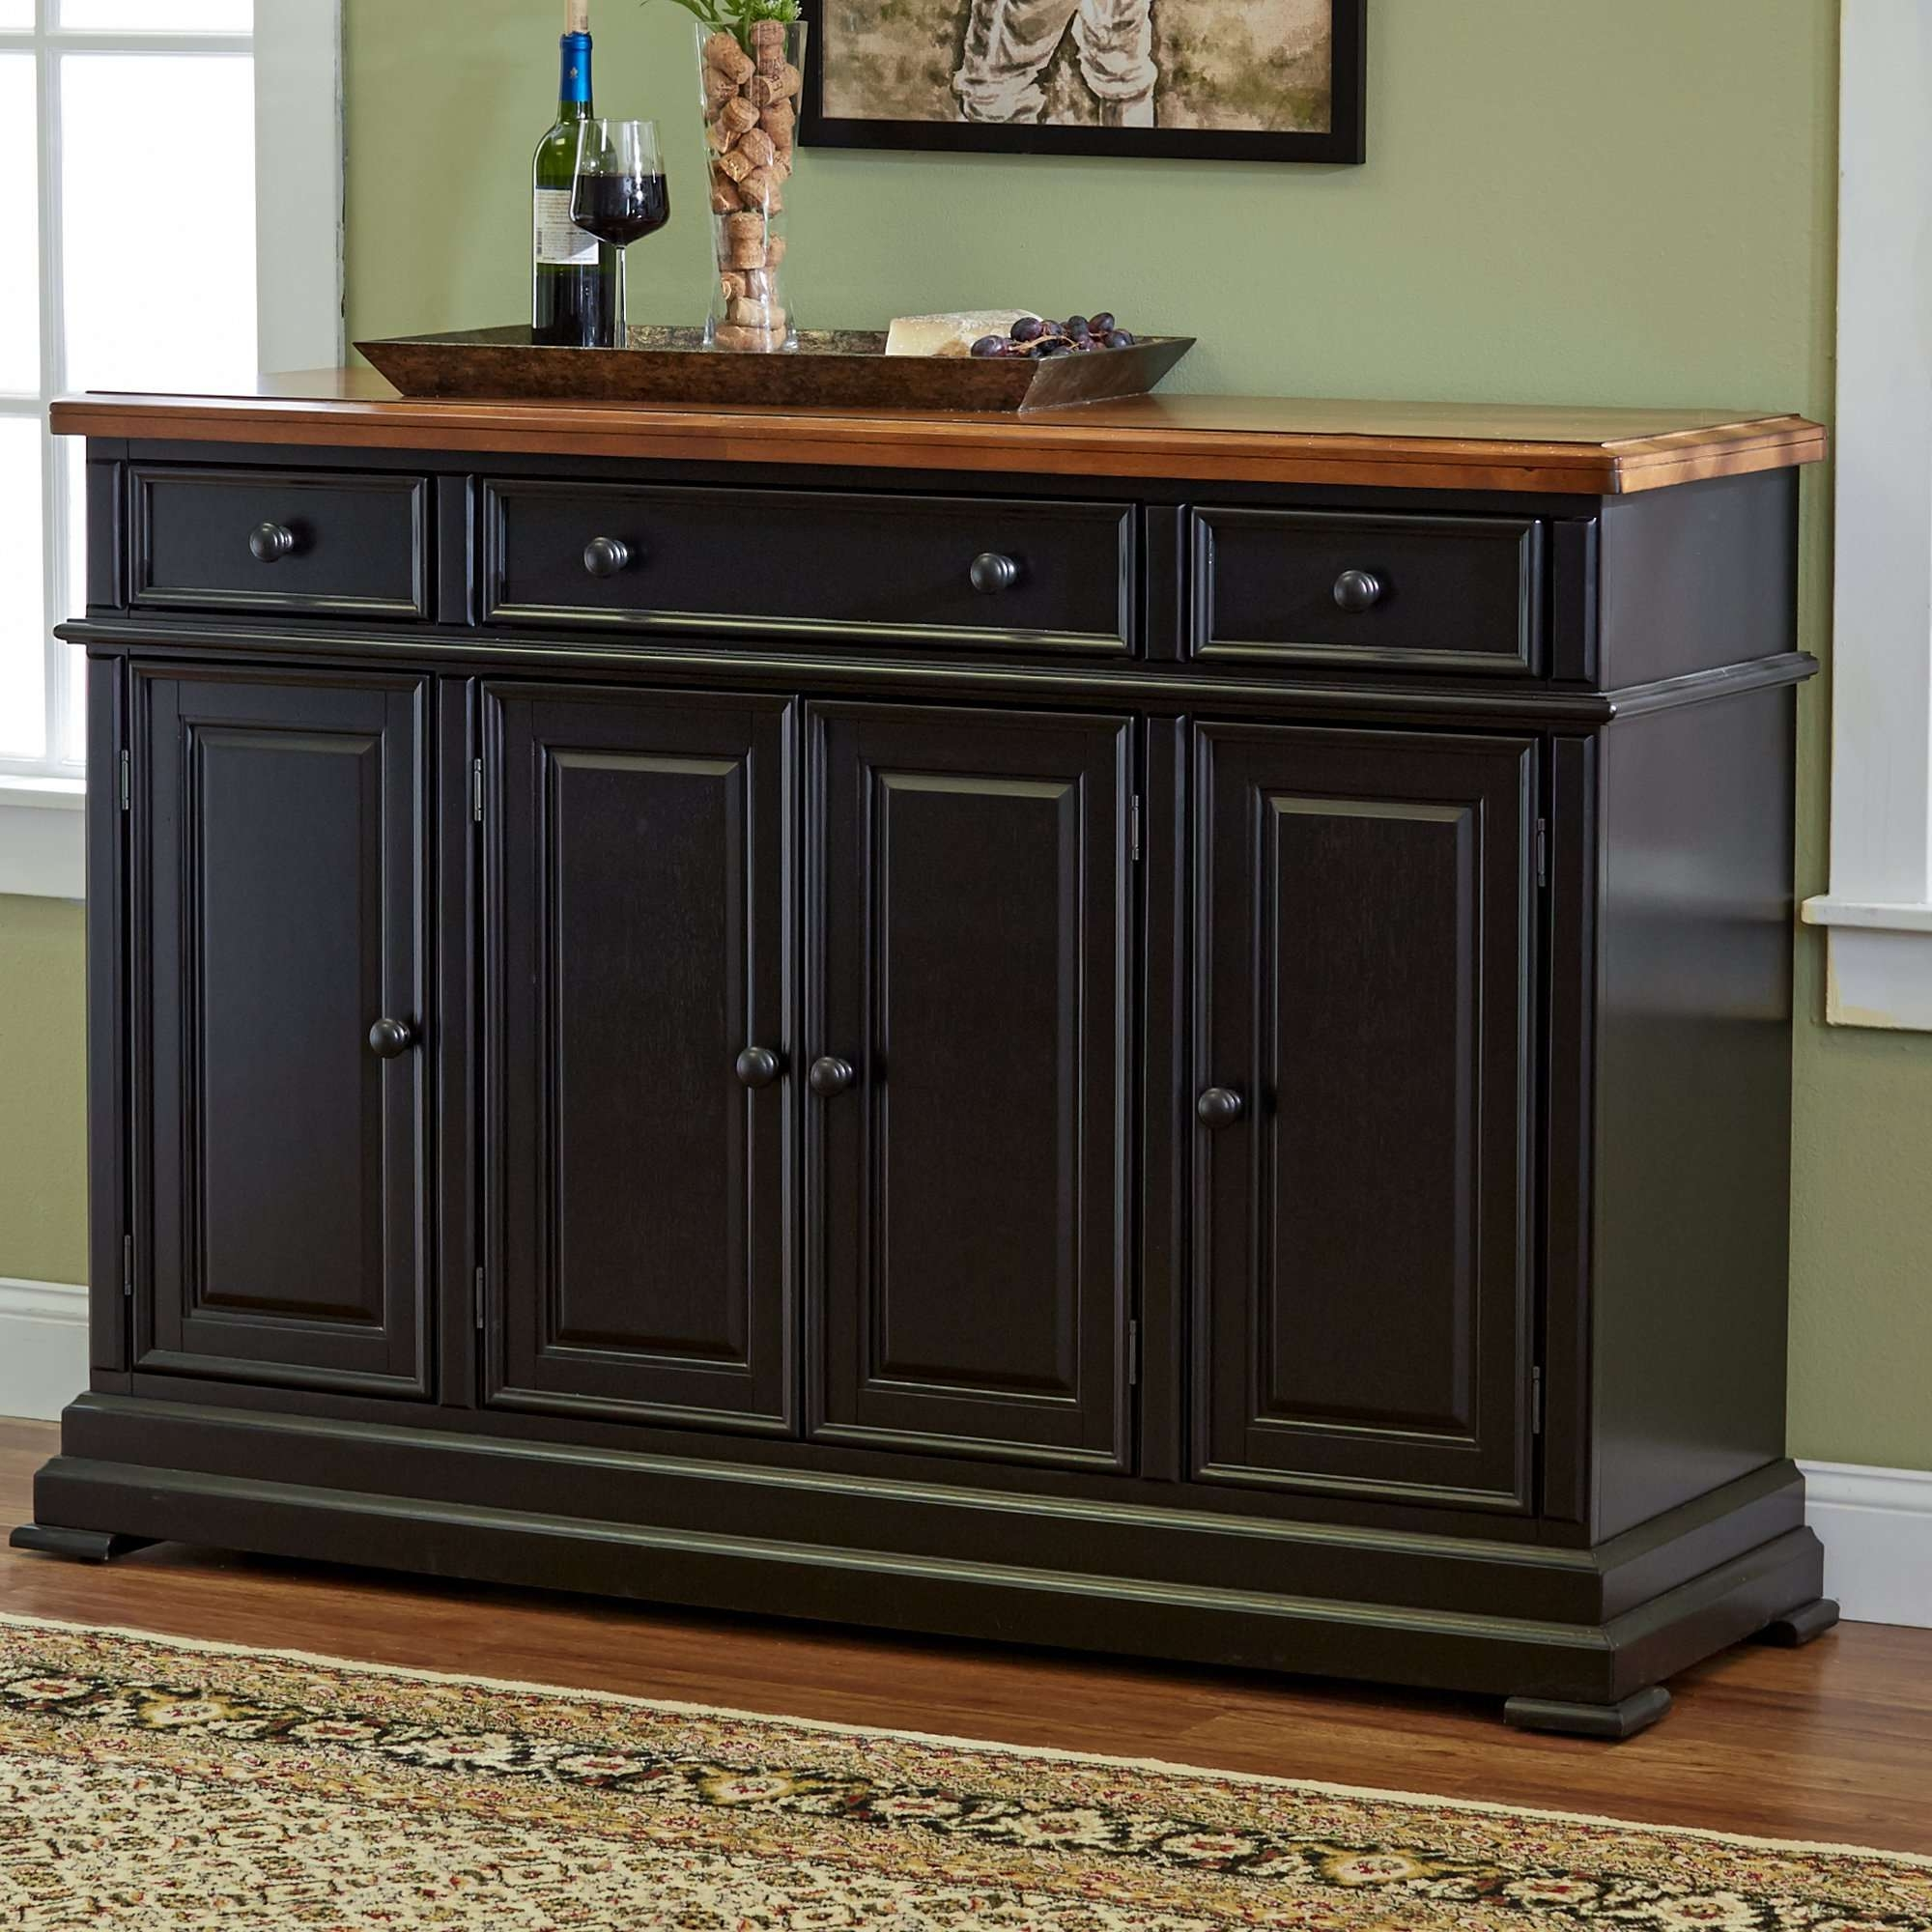 Luxury Rustic Sideboard Buffet – Bjdgjy Throughout Rustic Buffet Sideboards (View 14 of 20)